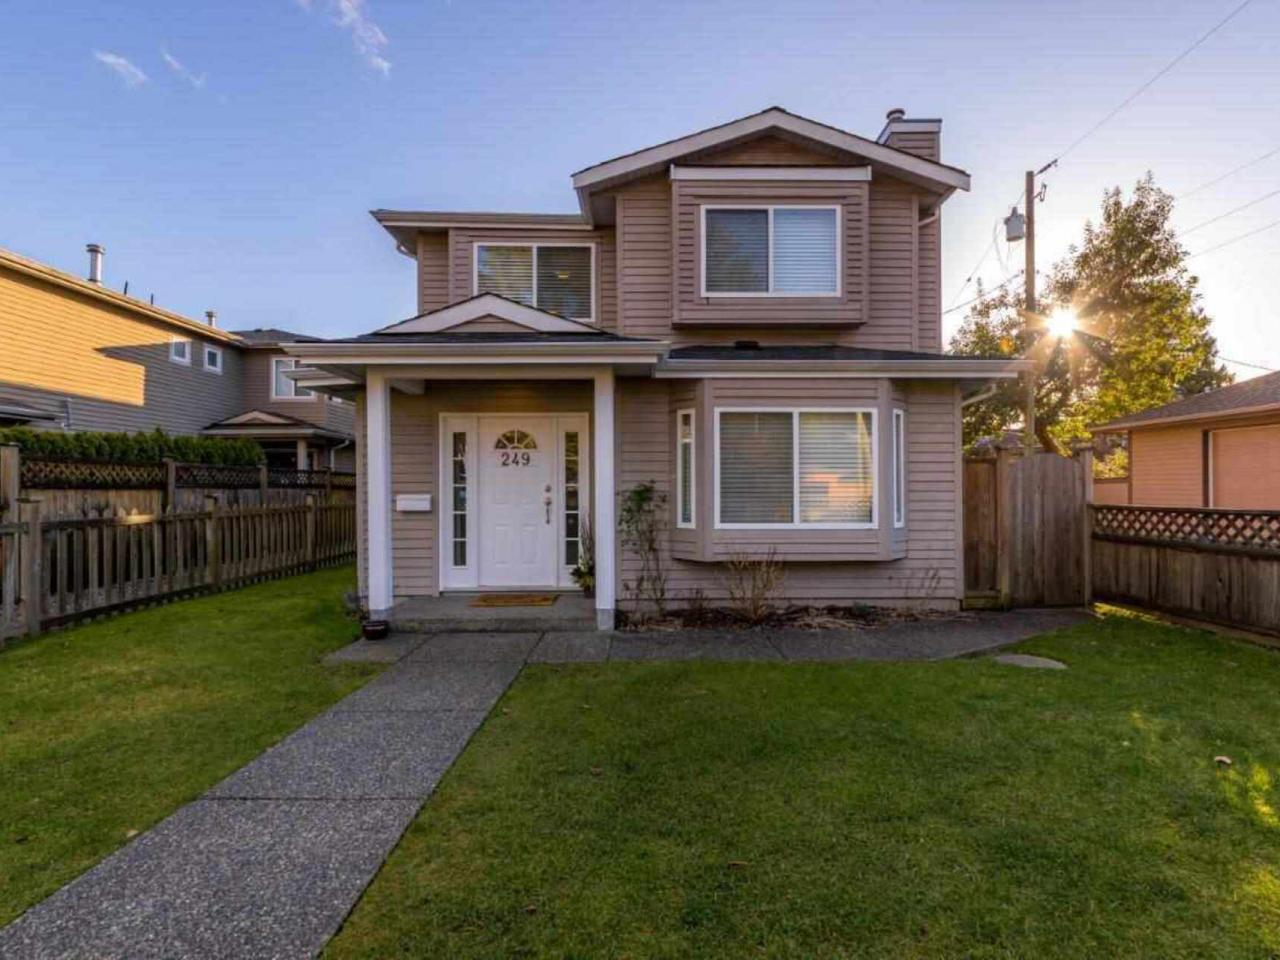 249 W 19th Street, Central Lonsdale, North Vancouver